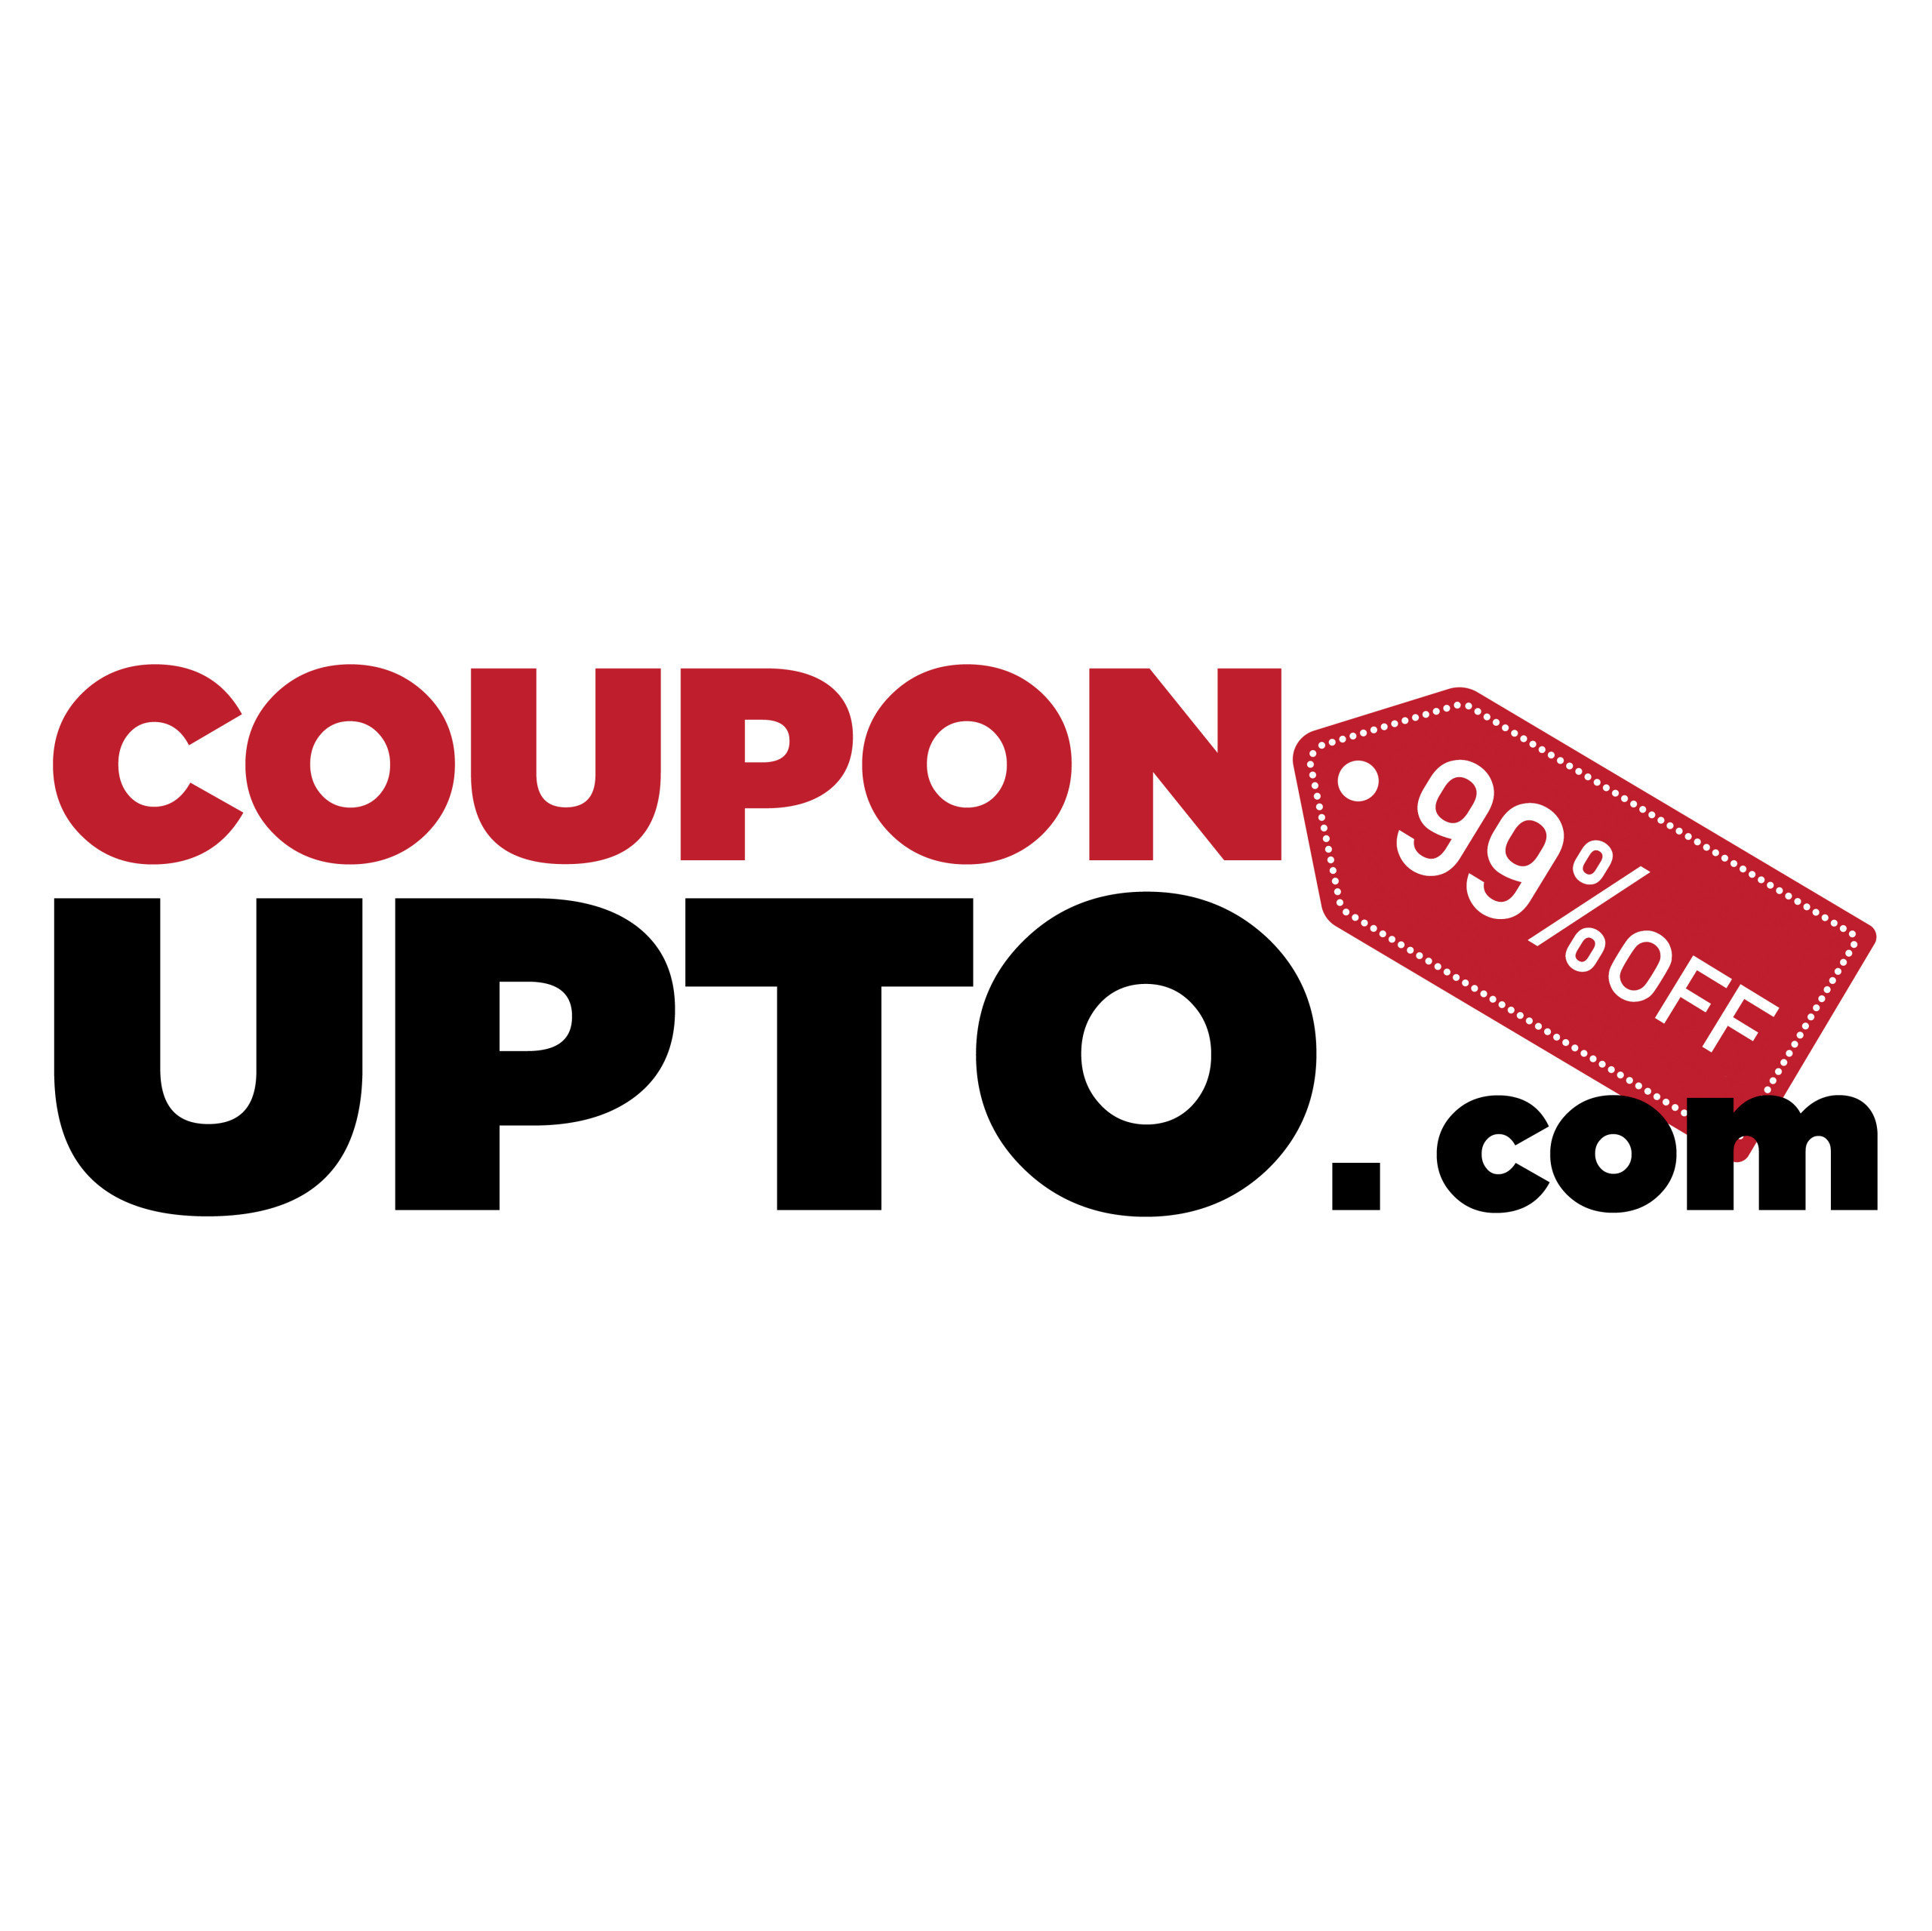 Up to 99% OFF Coupon Codes, Promo Codes & Discounts